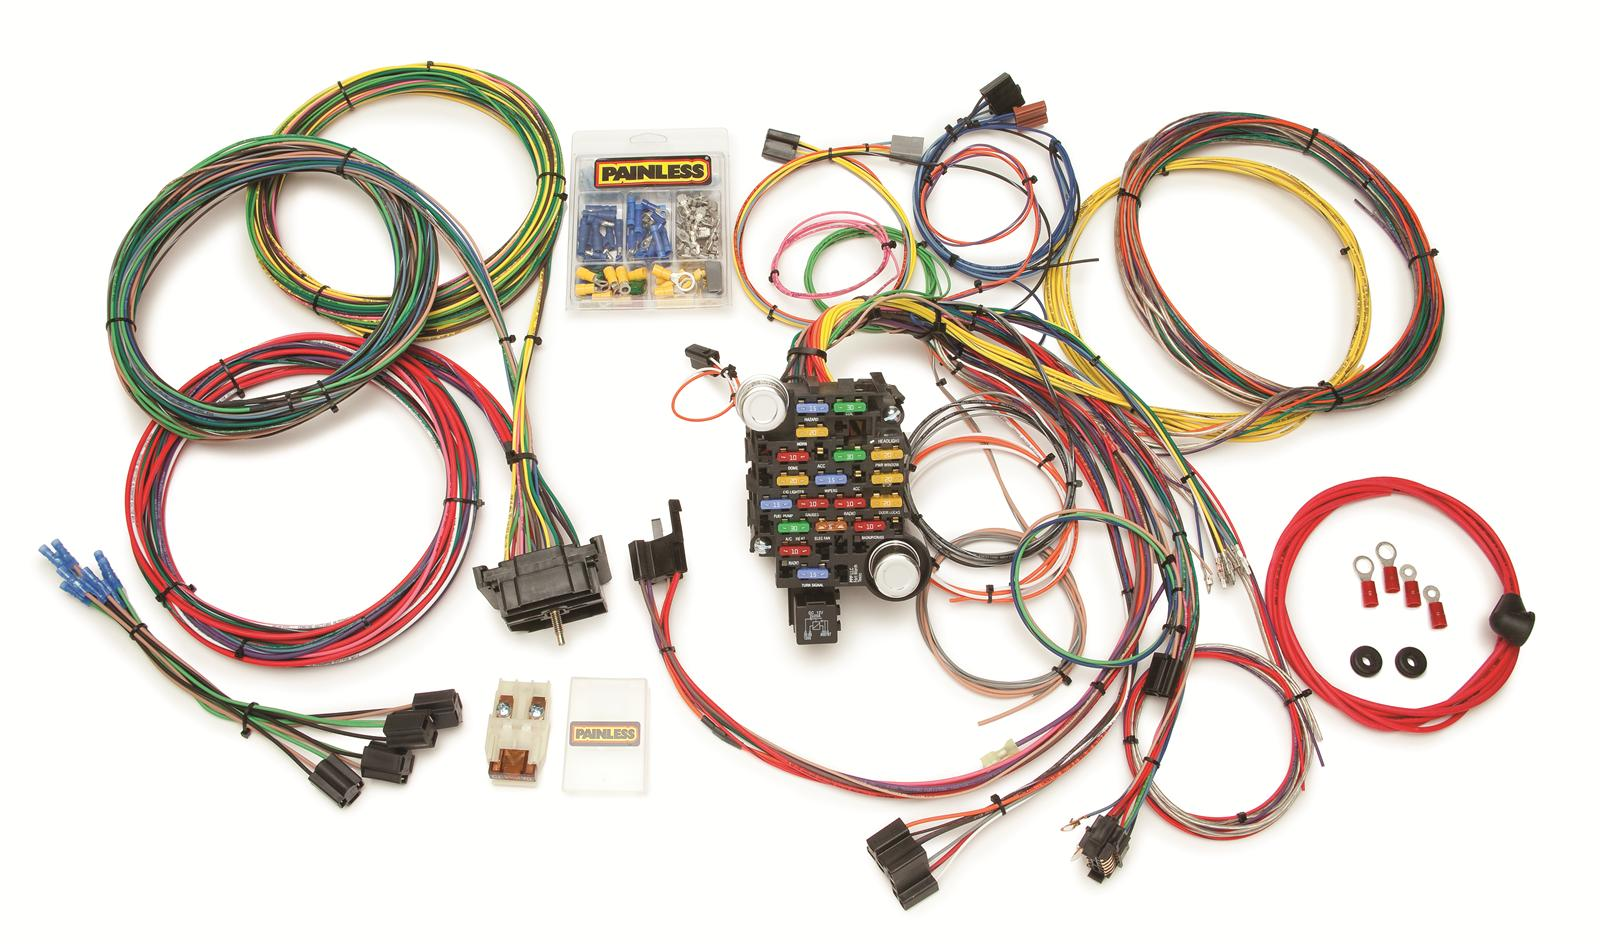 1970 Gmc Wiring Harness Diagram Will Be A Thing Painless Performance Chevy Truck Harnesses 10206 Free Shipping Rh Summitracing Com Jimmy